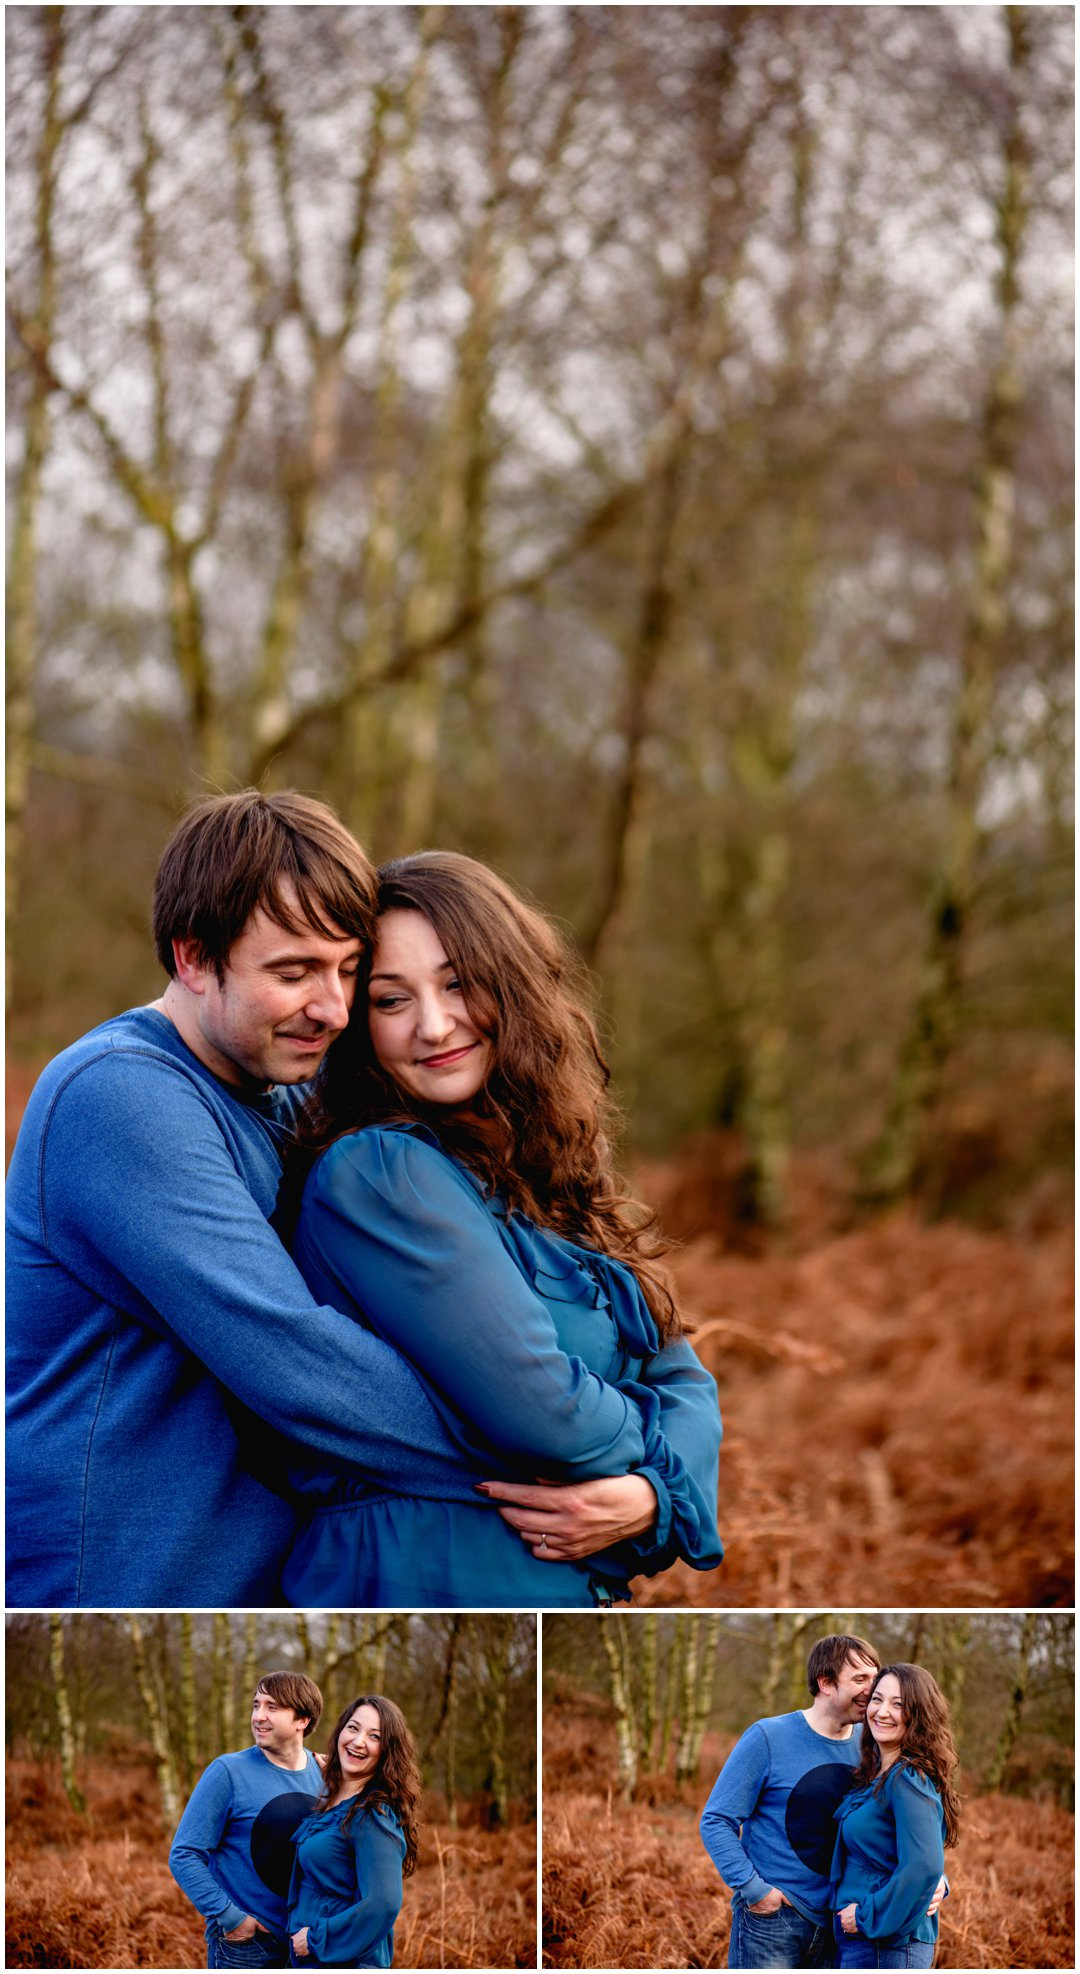 Rebecca and Andy, engagement shoot in Sutton Park, Sutton Coldfield by Birmingham and West Midlands based photographer, Lisa Carpenter Photography before their wedding at Swinfen Hall